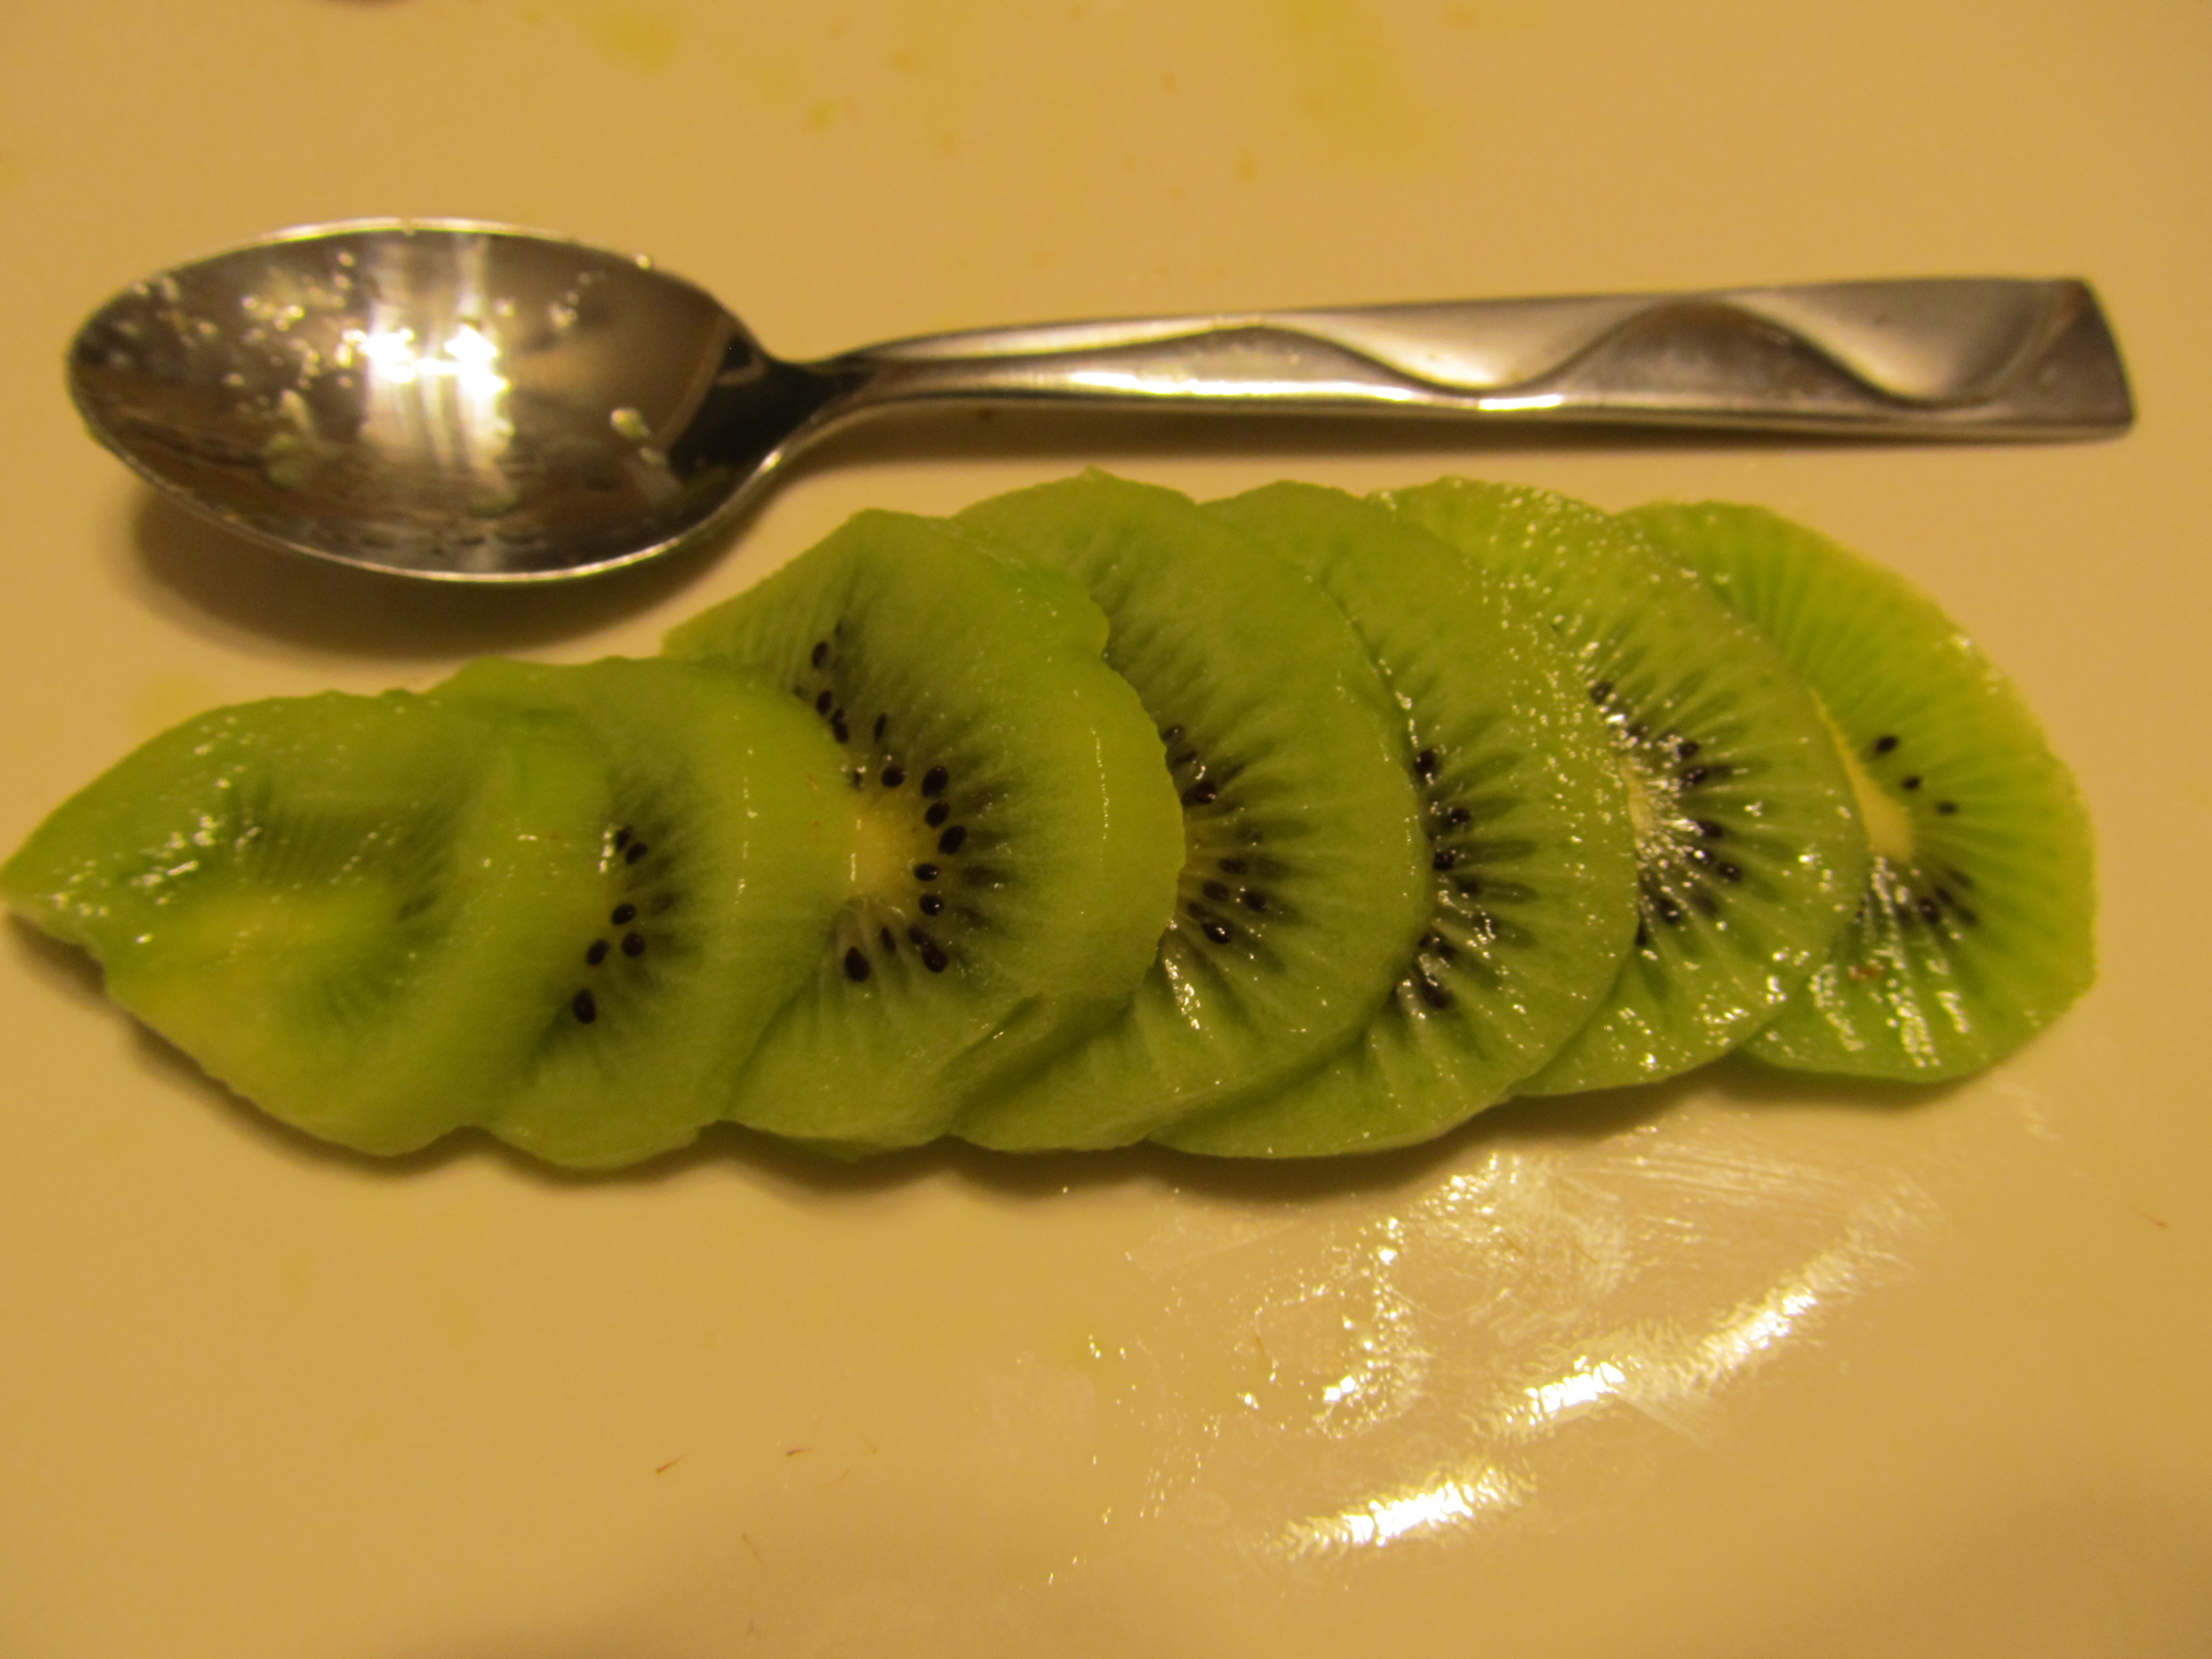 Picture of How to Peel a Kiwi Using a Spoon